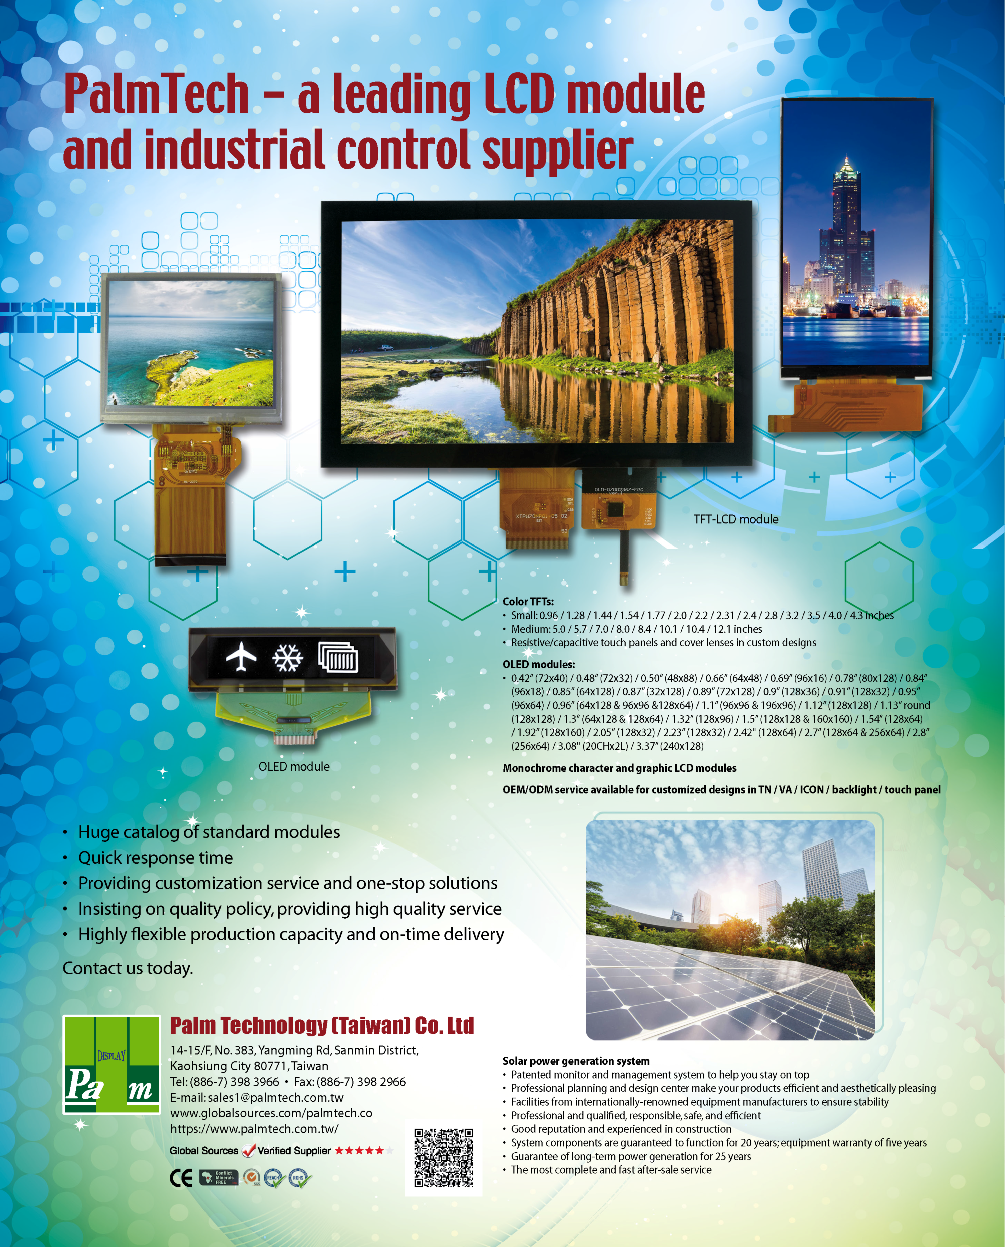 Electronic Components Aug 2019 E-magazines